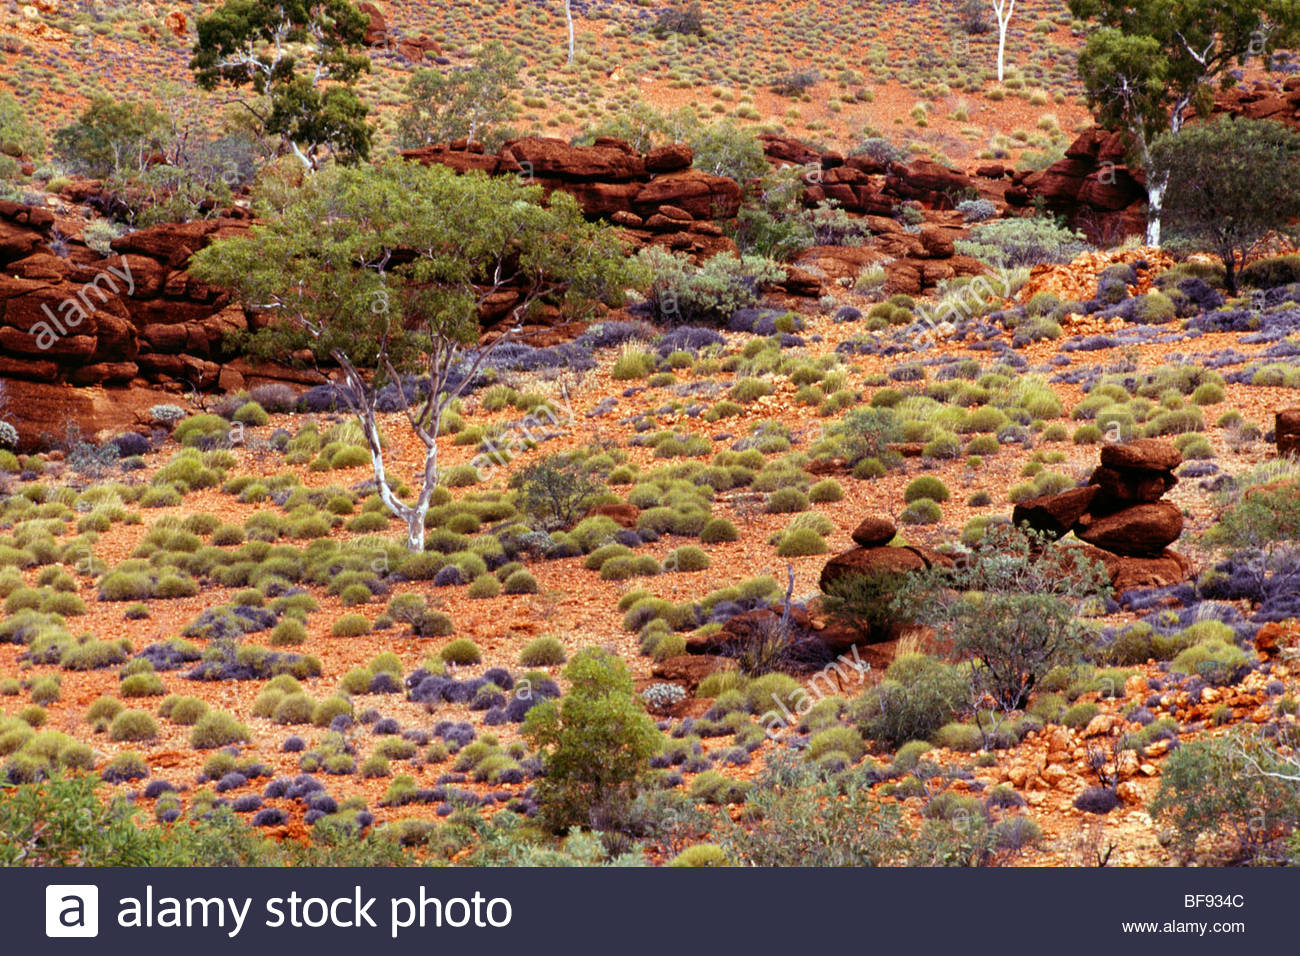 River gum trees and spinifex grass, Central Desert, Australia - Stock Image